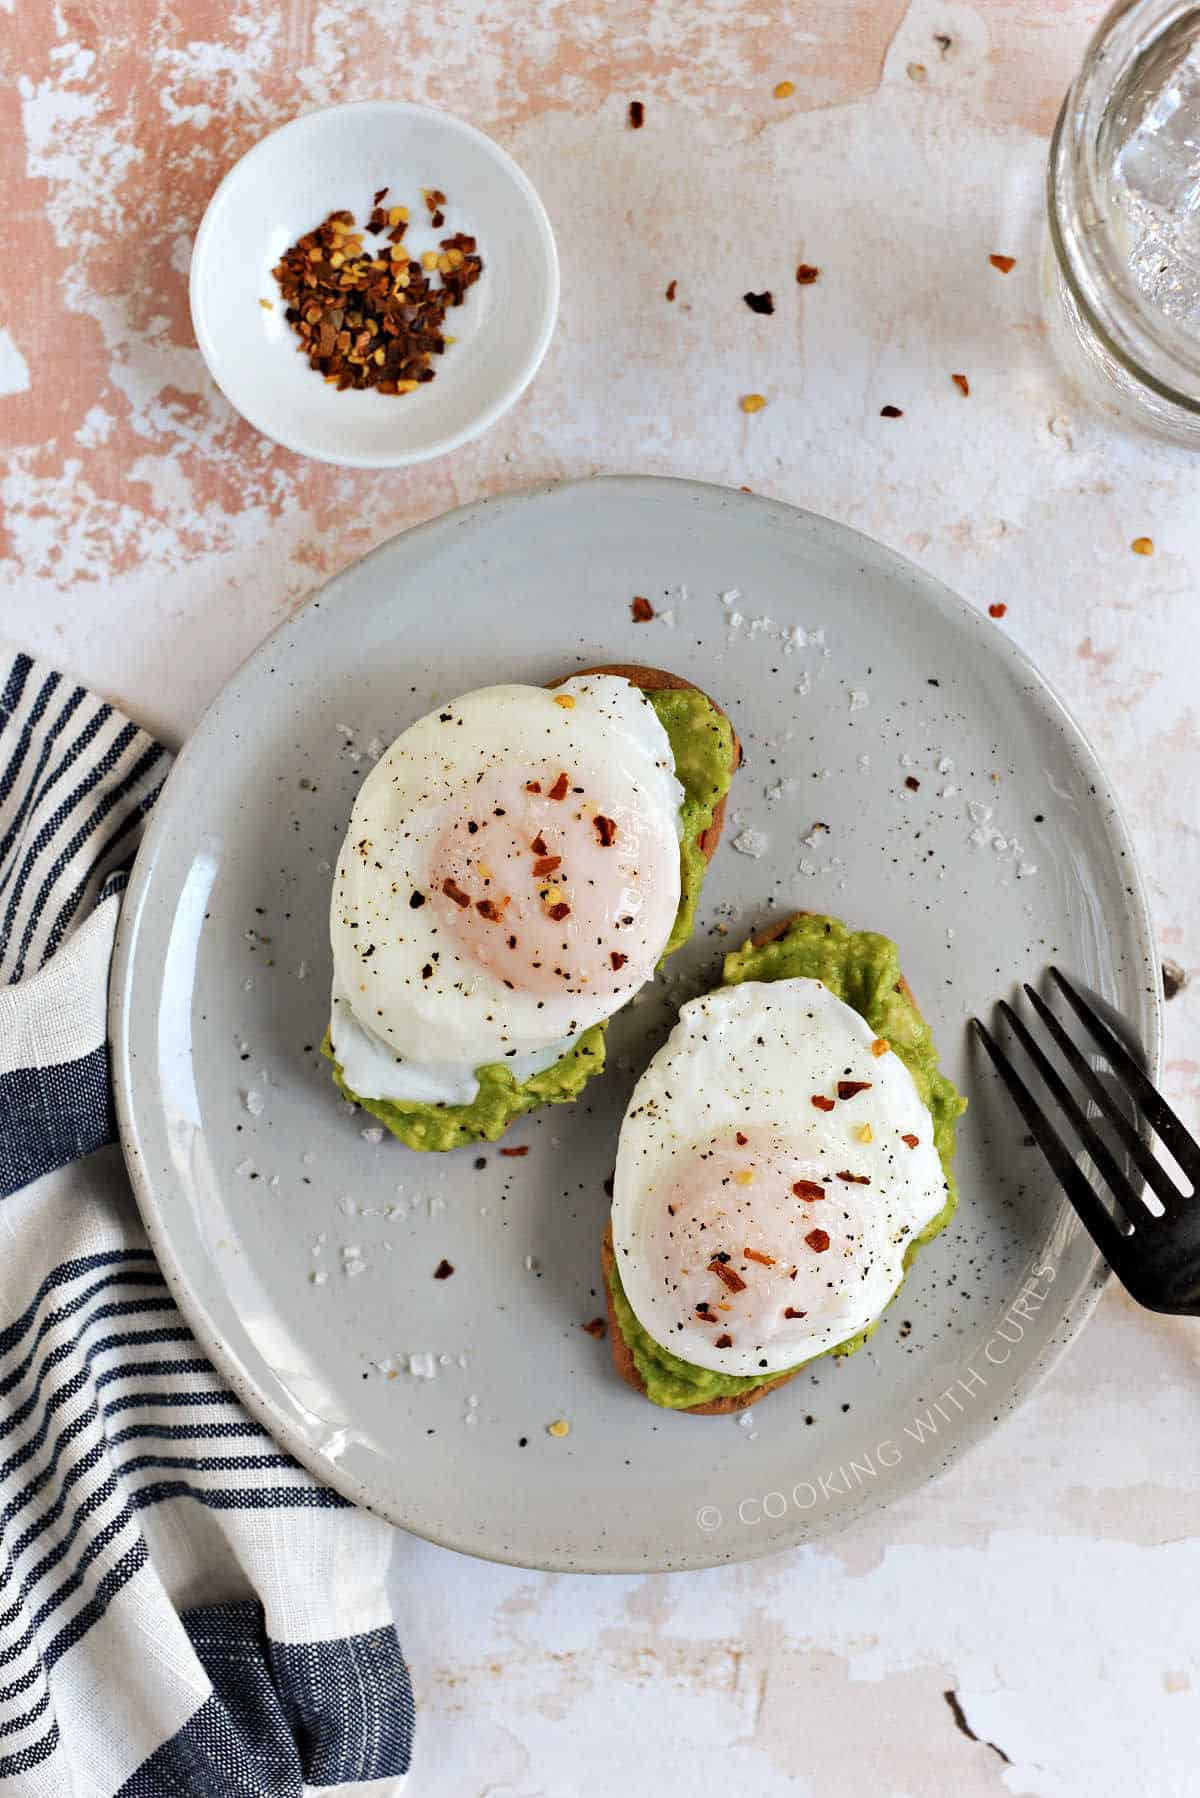 Two poached eggs sprinkled with flaked salt and red pepper flakes on top of two slices of avocado toast on a small plate.